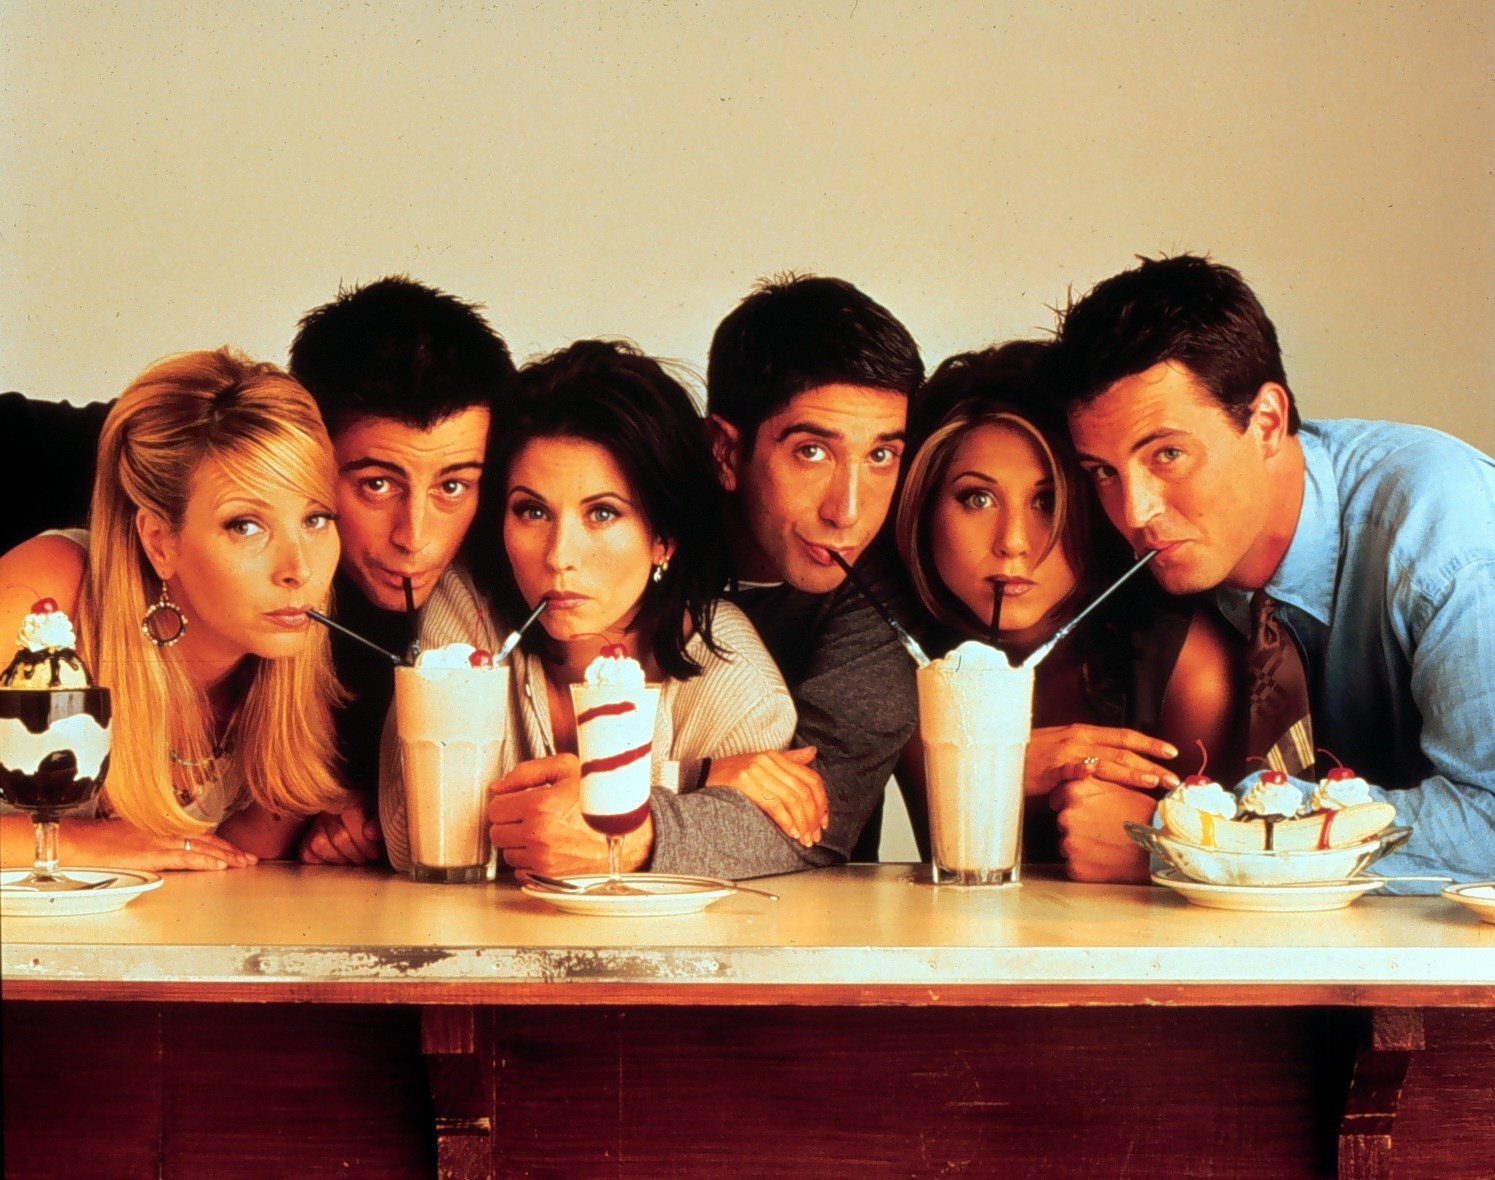 Friends is problematic